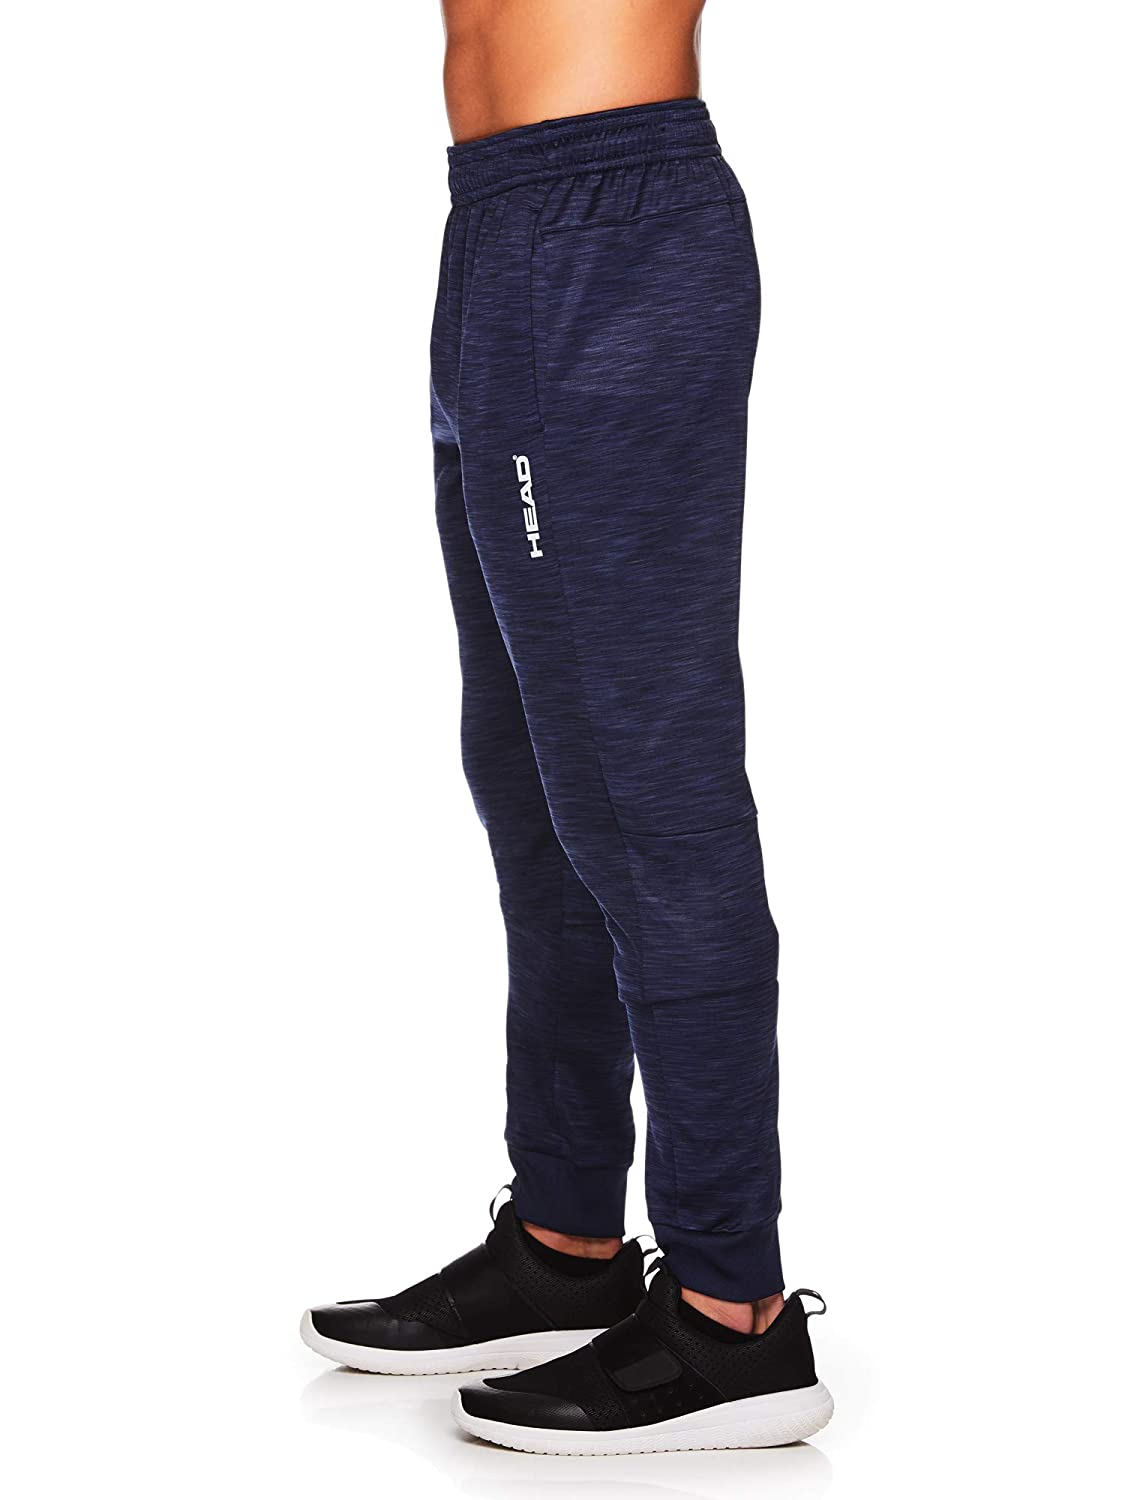 Performance Workout /& Jogging Activewear Sweatpants HEAD Mens Jogger Running Pants